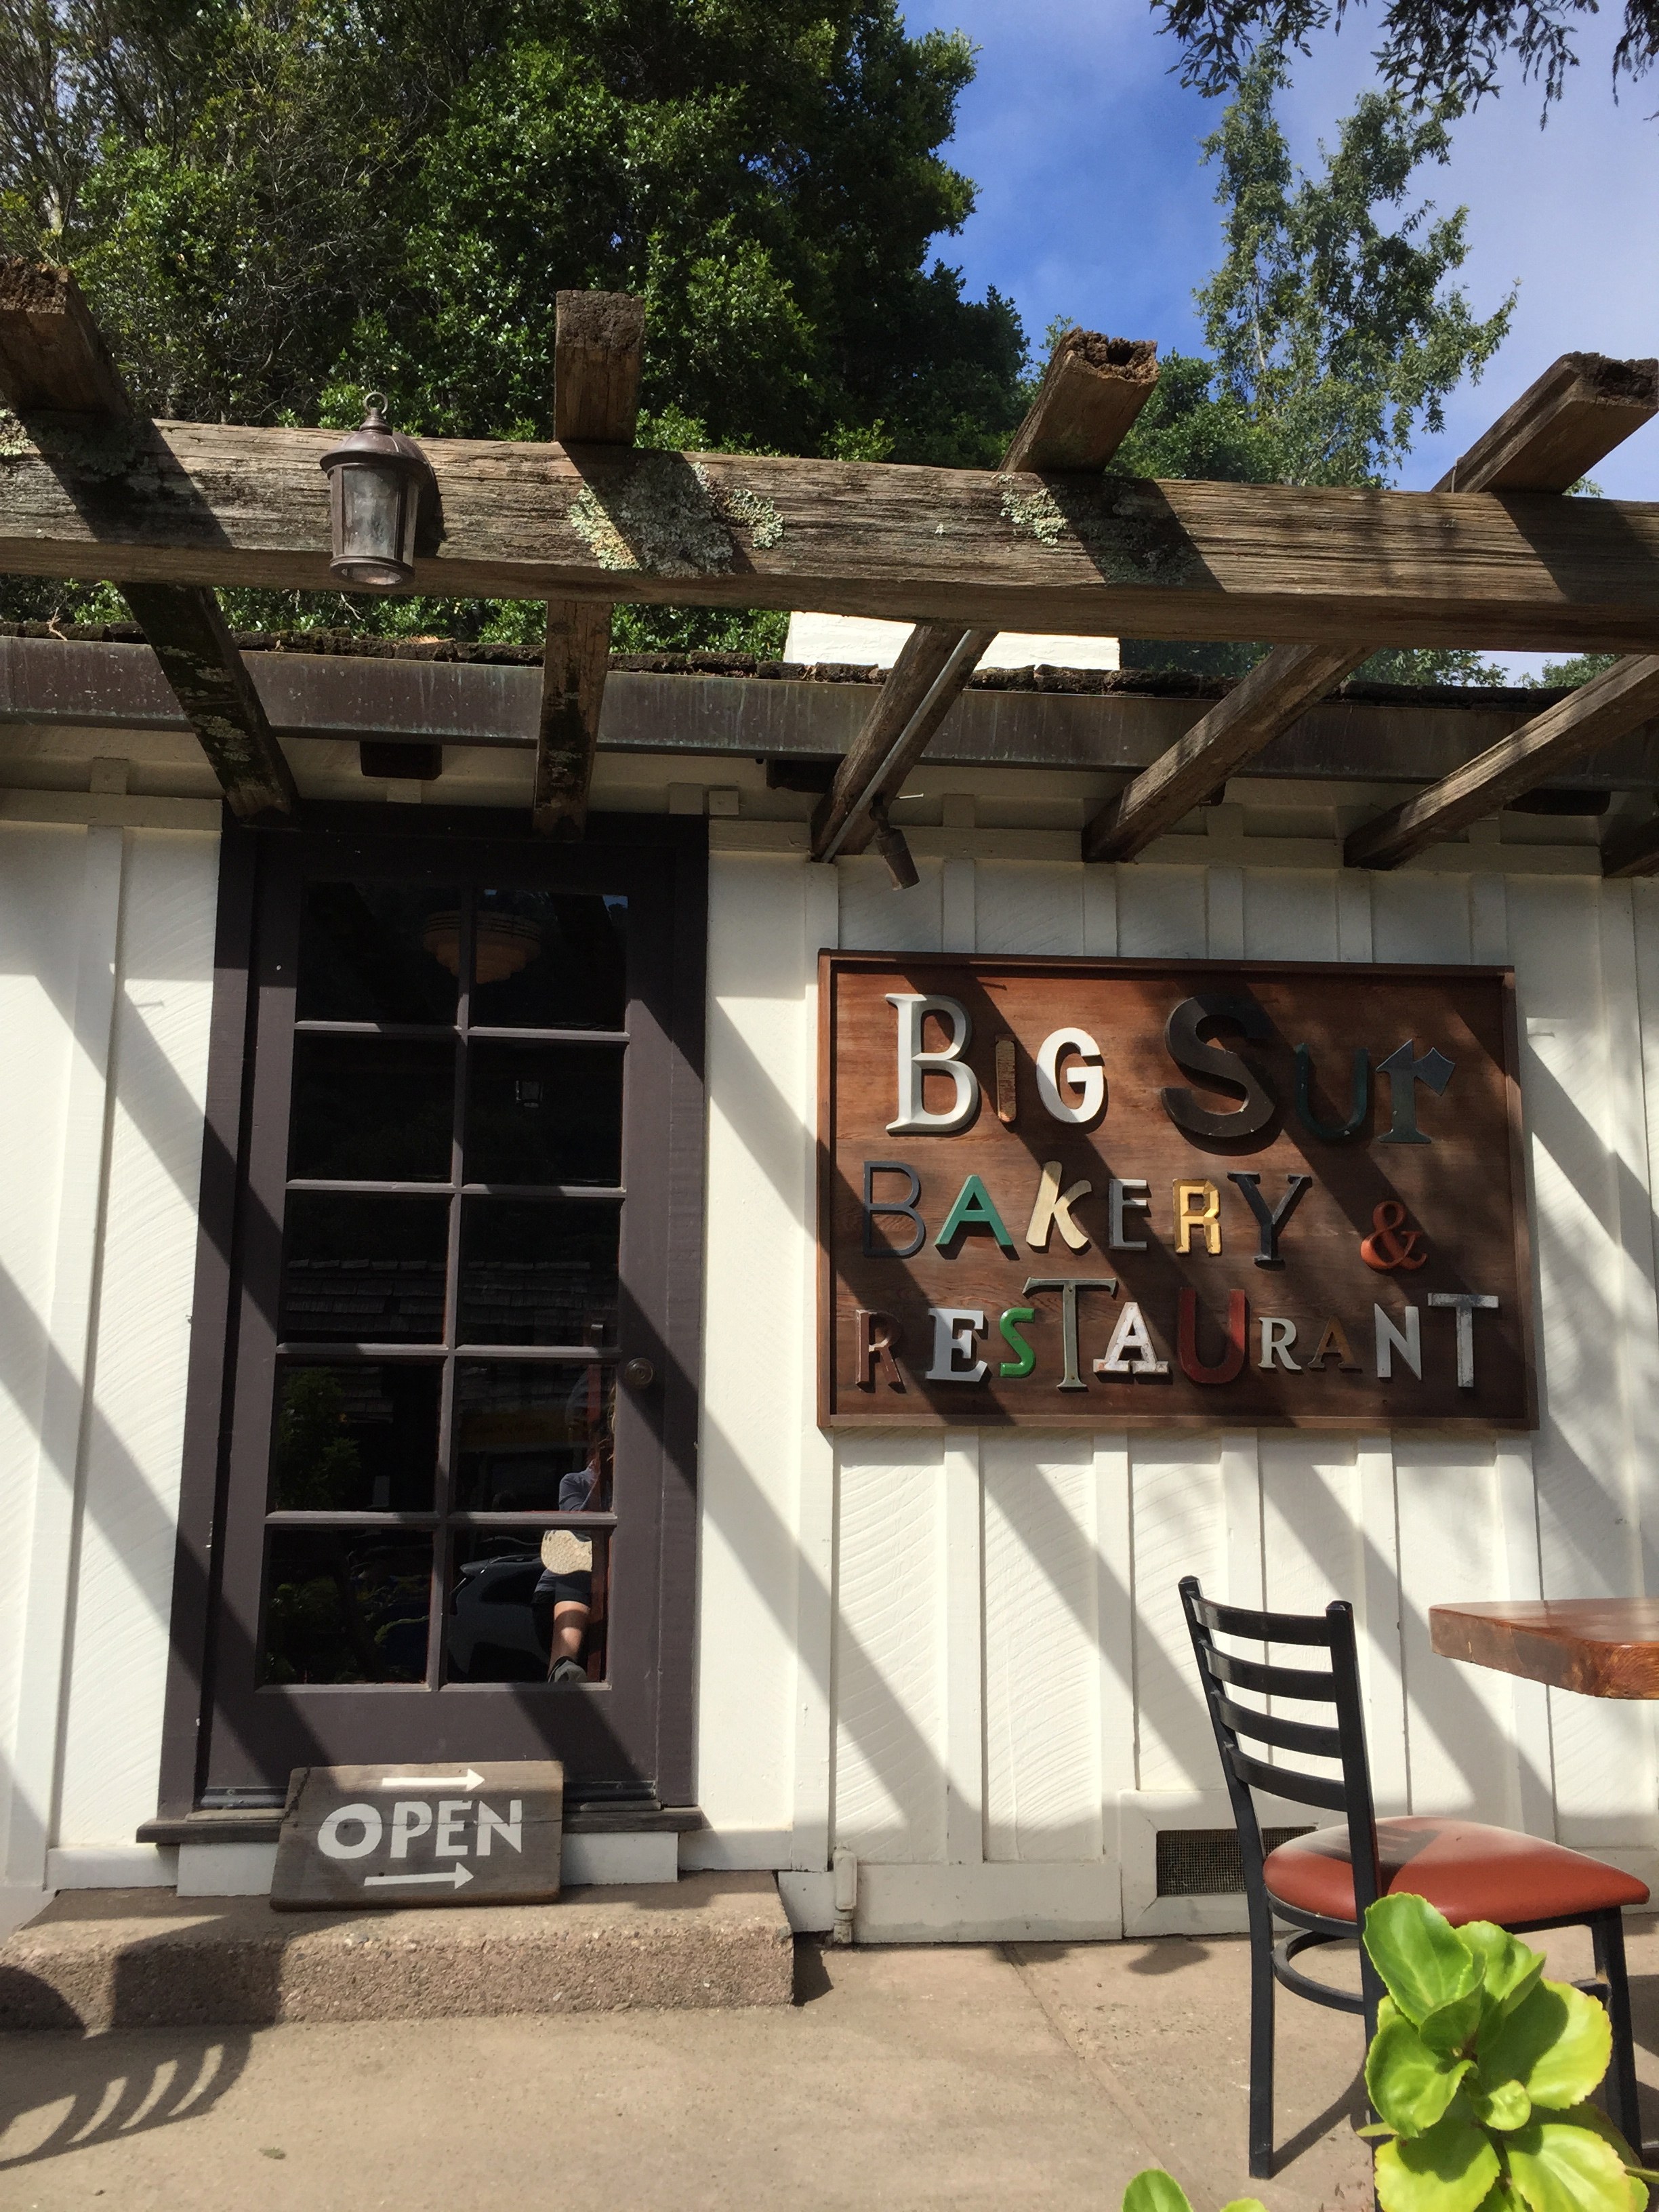 Picturesque Big Sur Bakery